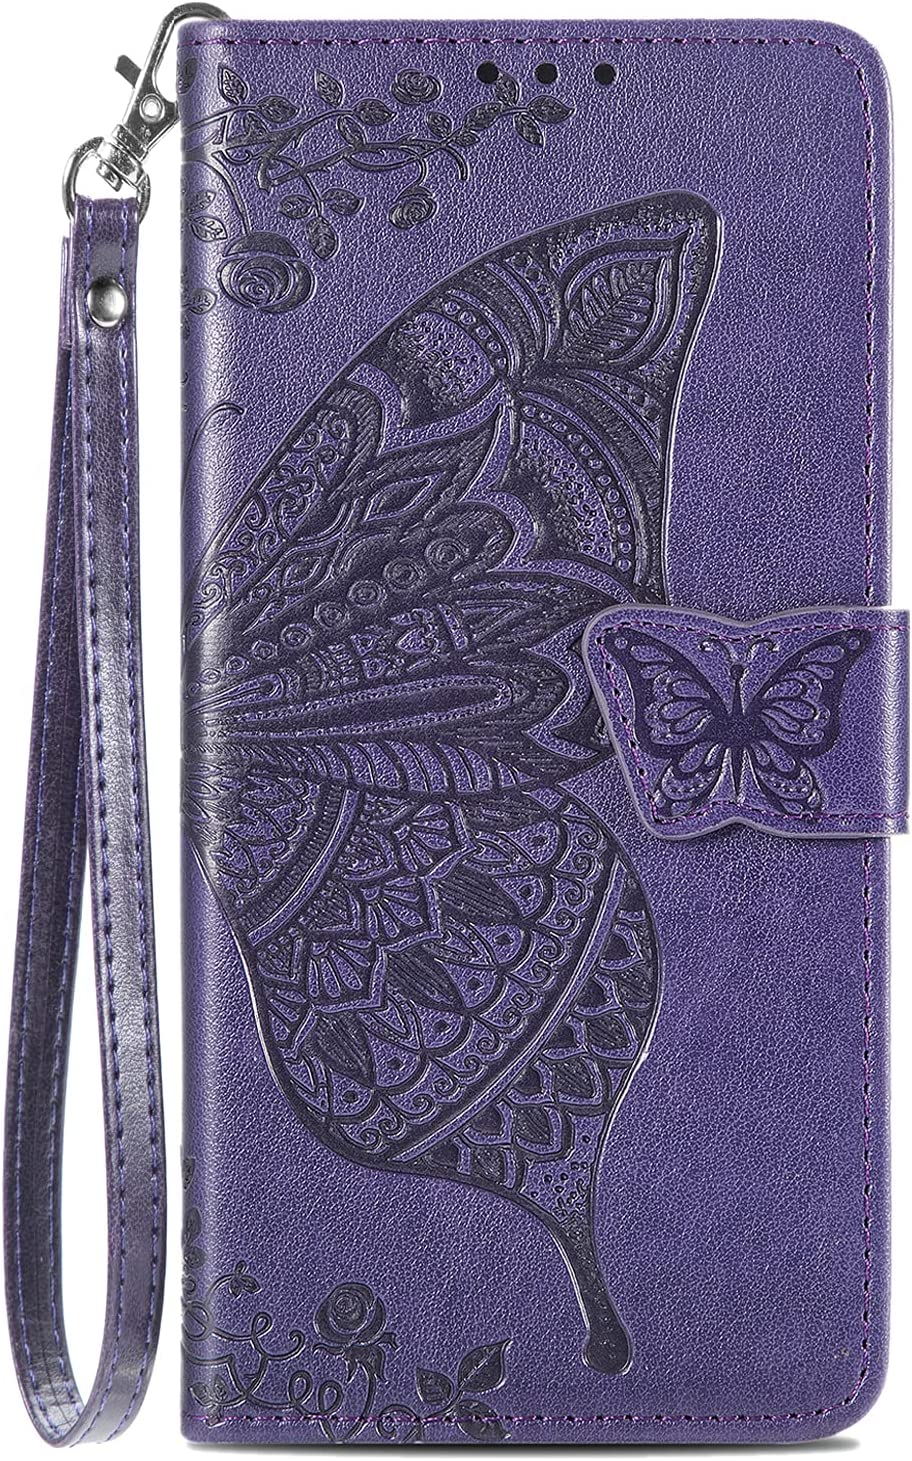 Galaxy A12 Wallet Case, [Butterfly & Flower Embossed] Leather Wallet Case Flip Protective Phone Cover with Card Slots and Kickstand for Samsung Galaxy A12 6.5-inch (Purple)